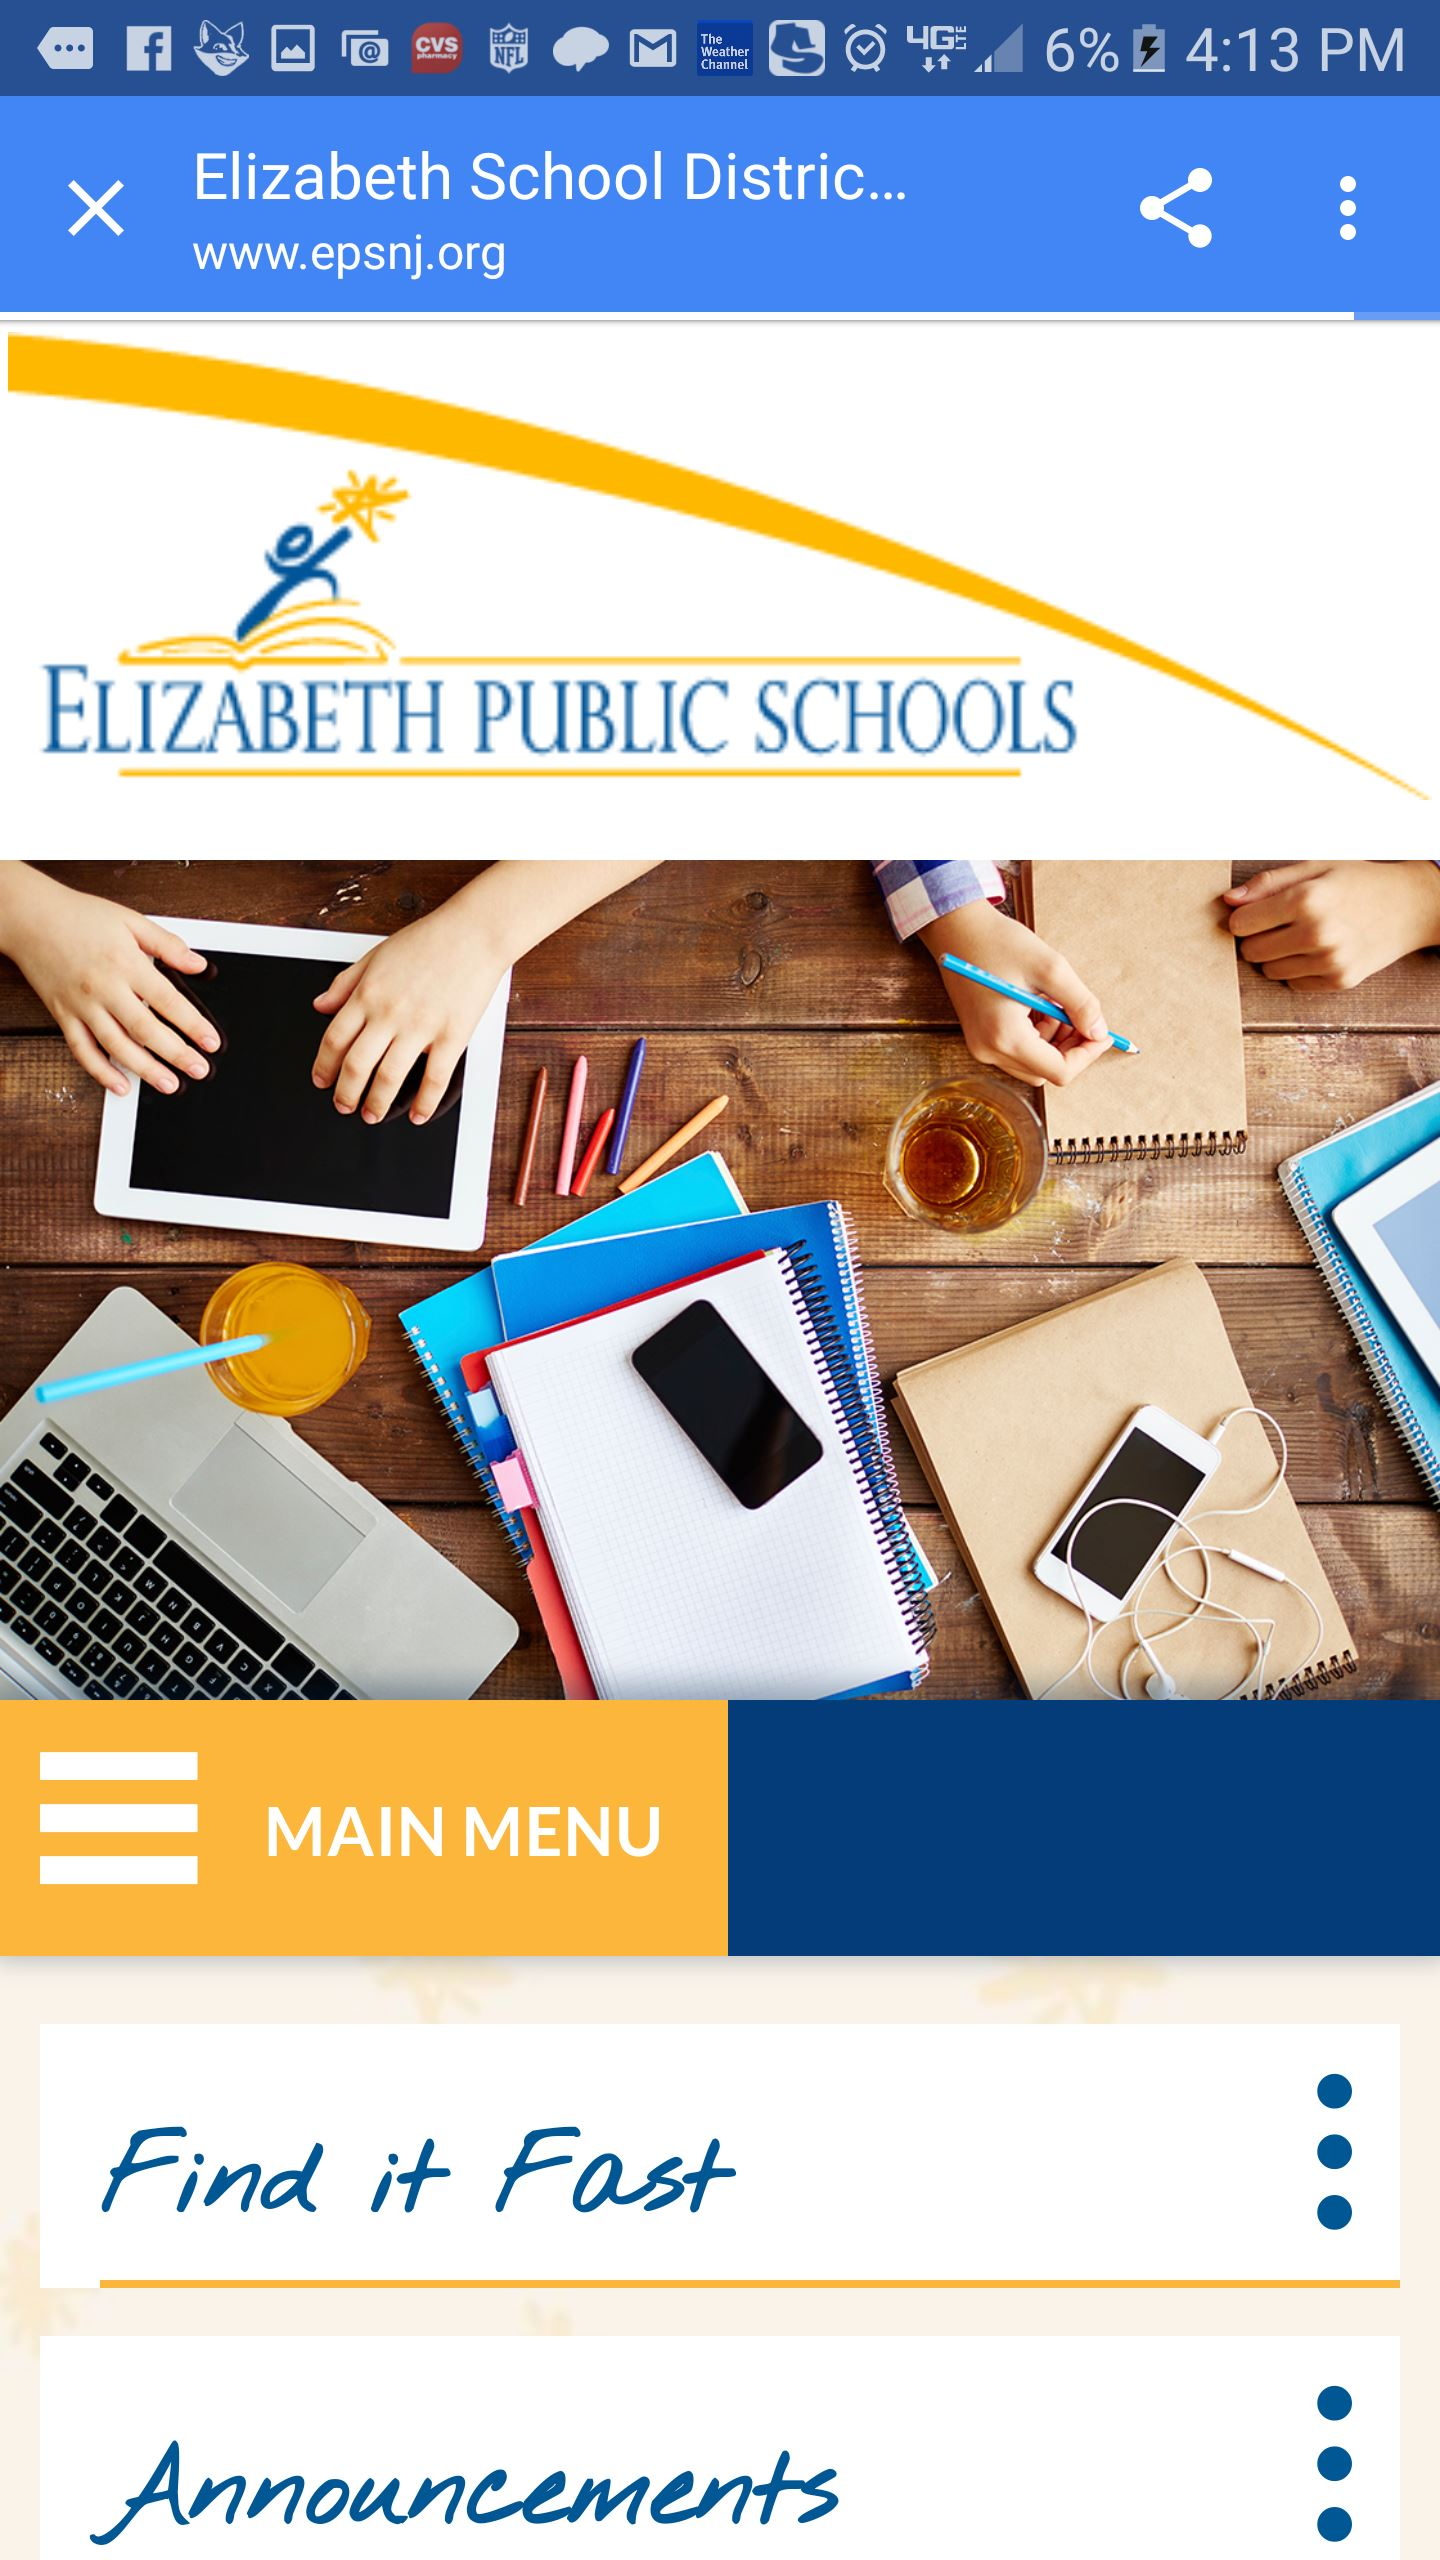 EPS partners with Blackboard to deliver engaging new website